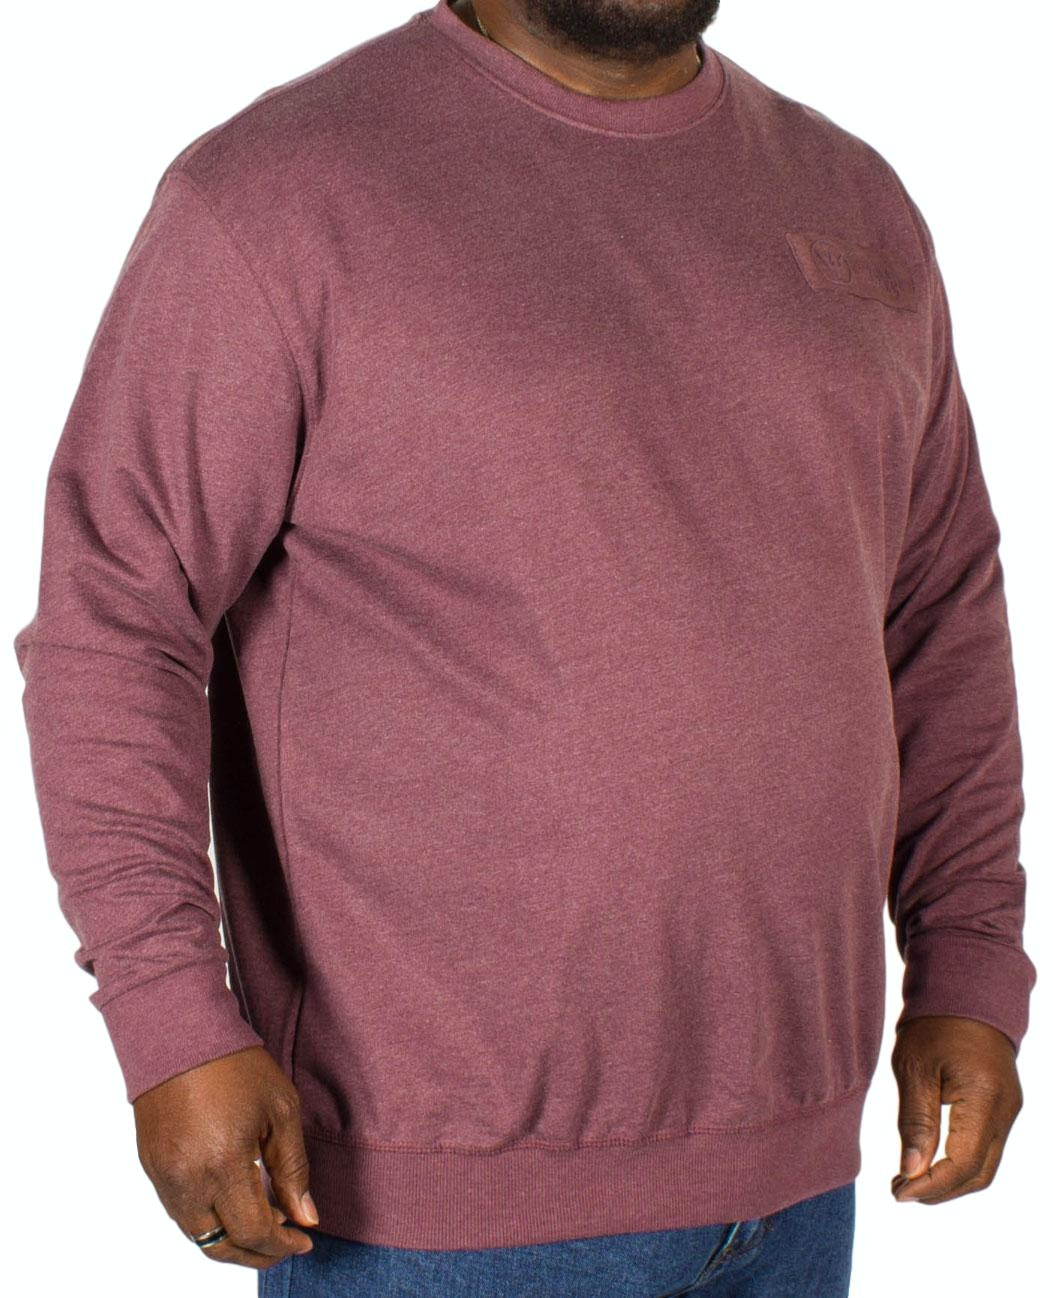 Replika Crew Neck Sweatshirt Burgundy